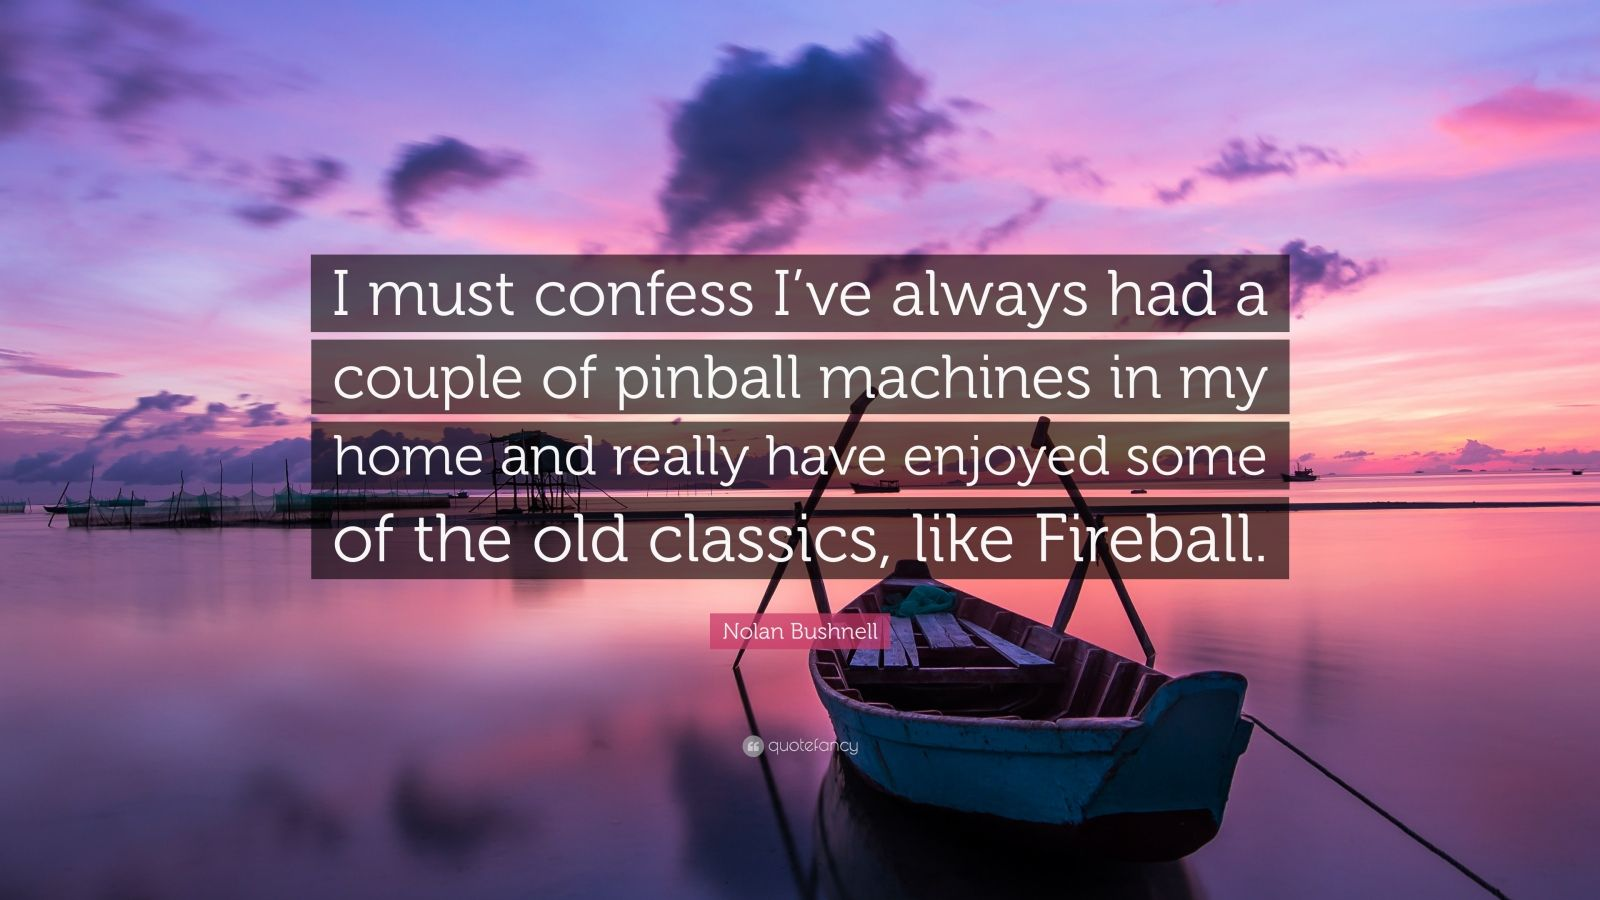 """Nolan Bushnell Quote: """"I must confess I've always had a couple of pinball machines in my home and really have enjoyed some of the old classics, like Fireball."""""""